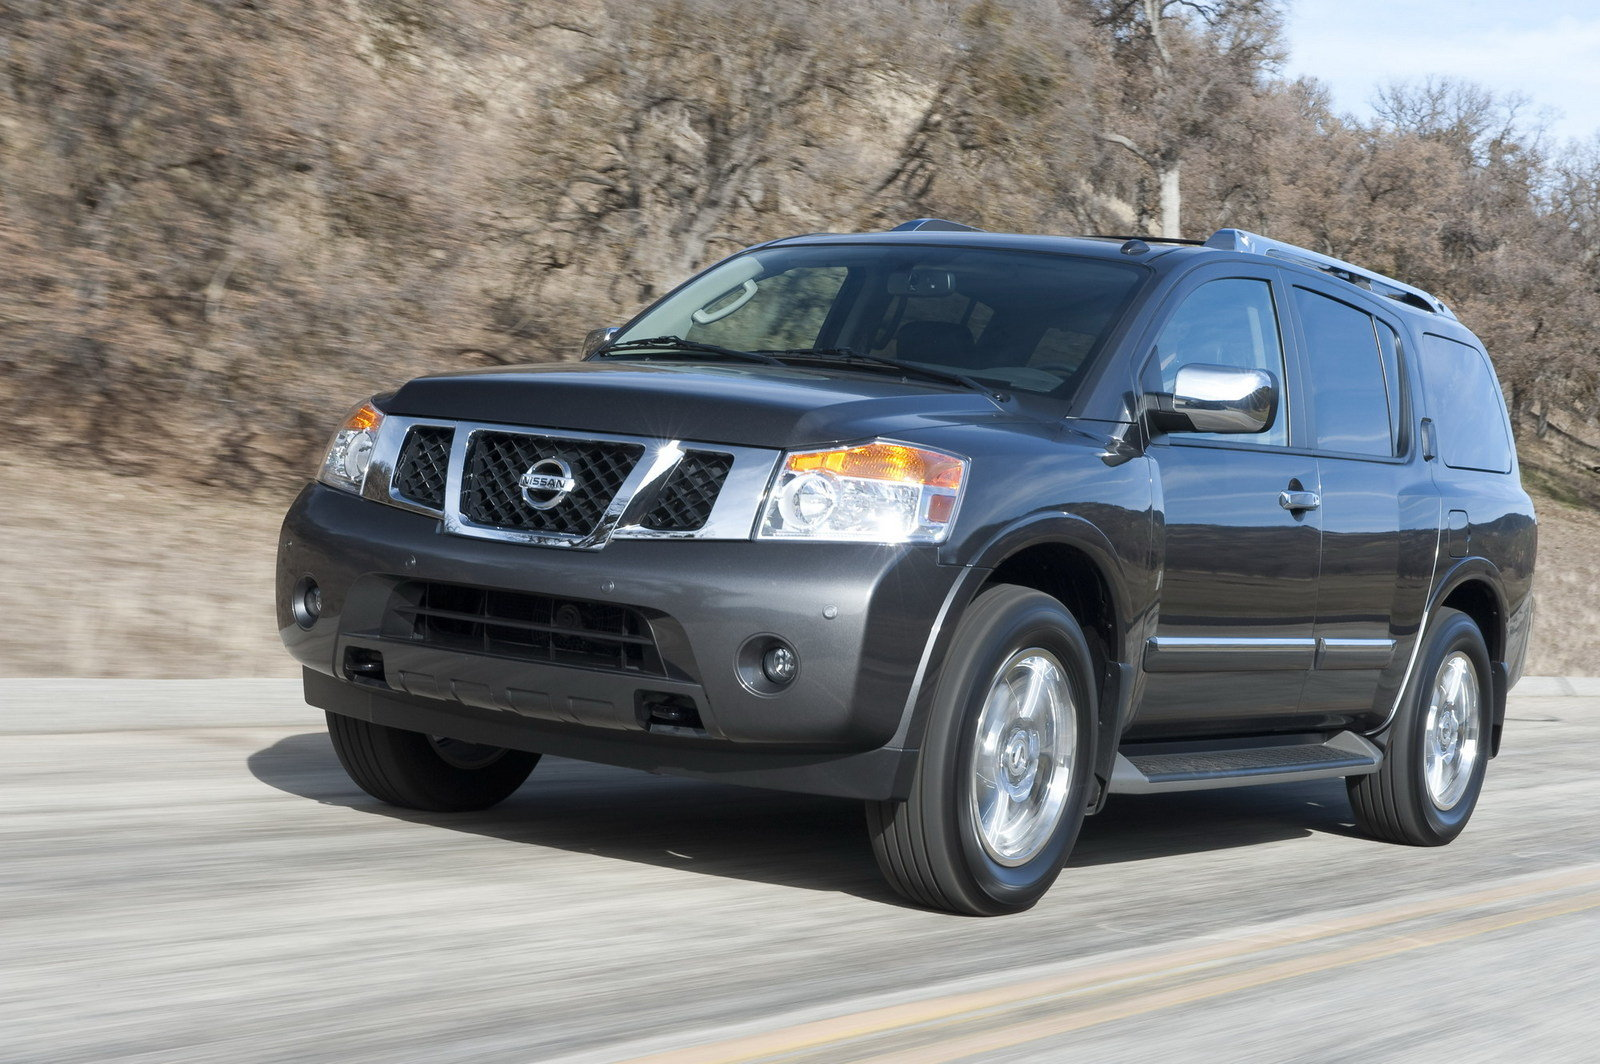 Cars With 3rd Row Seating >> 2011 Nissan Armada Review - Top Speed